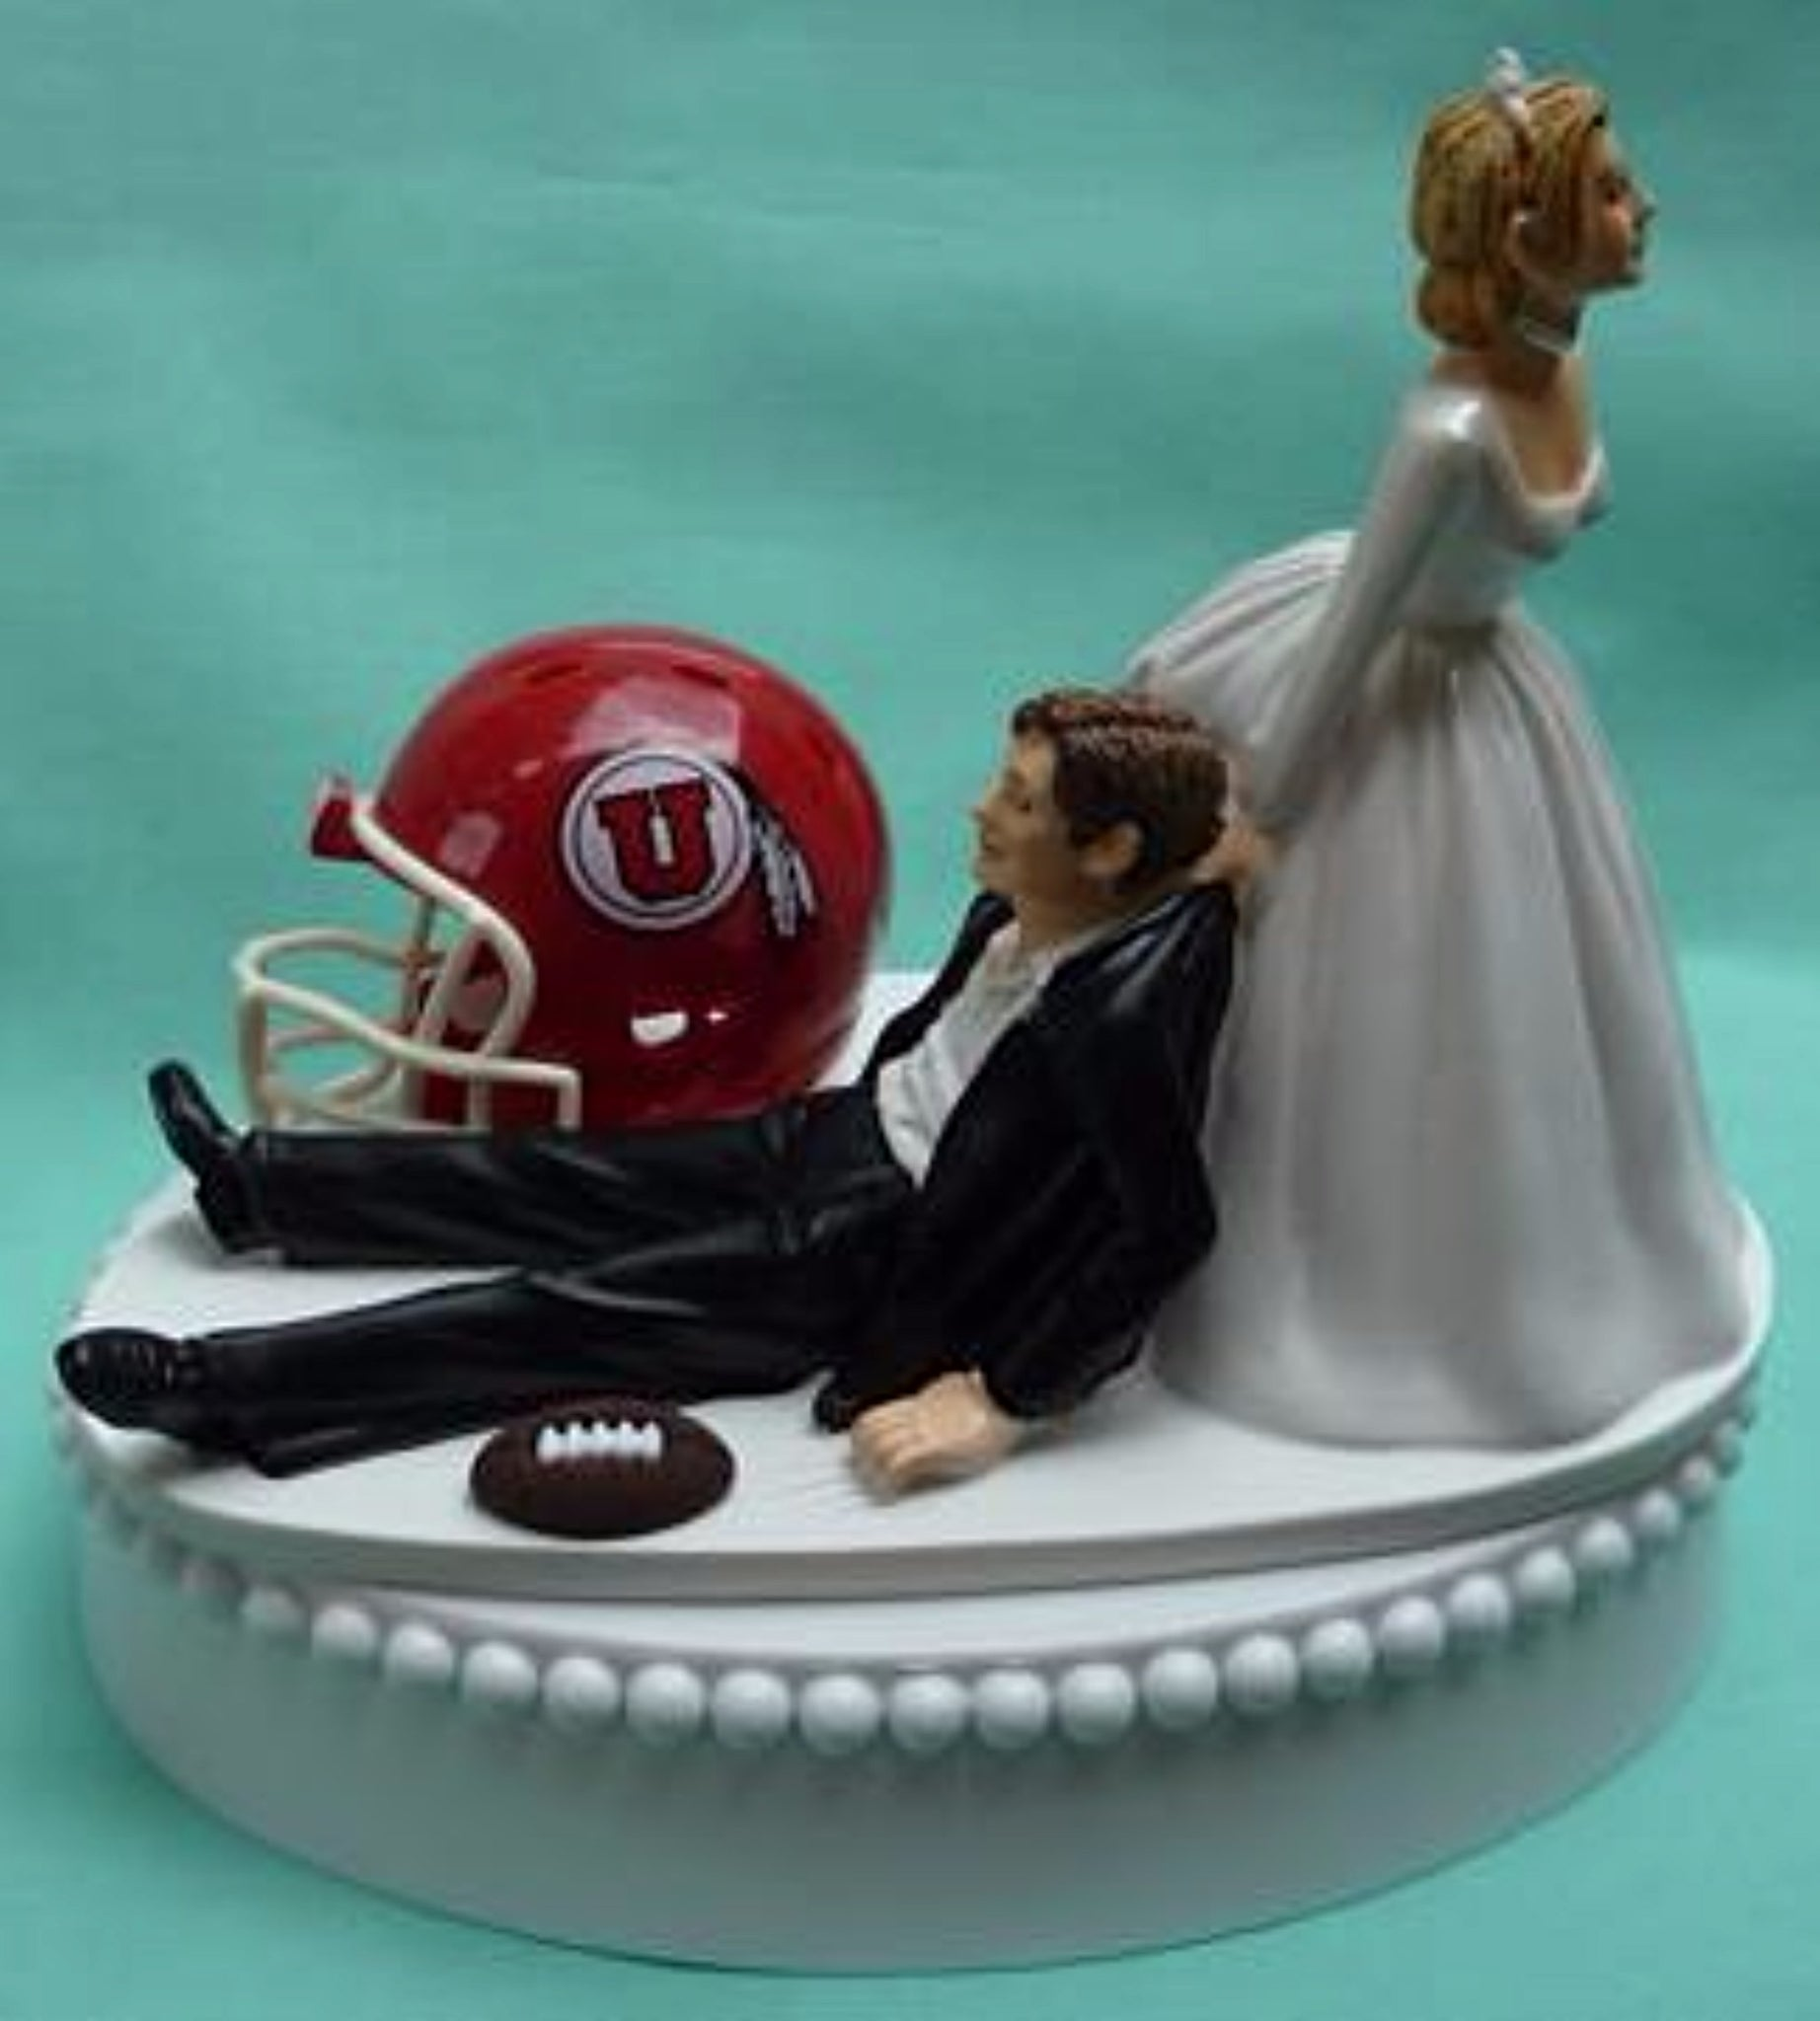 University of Utah wedding cake topper Utes football groom's cake top humorous bride drags groom funny reception gift Fun Wedding Things